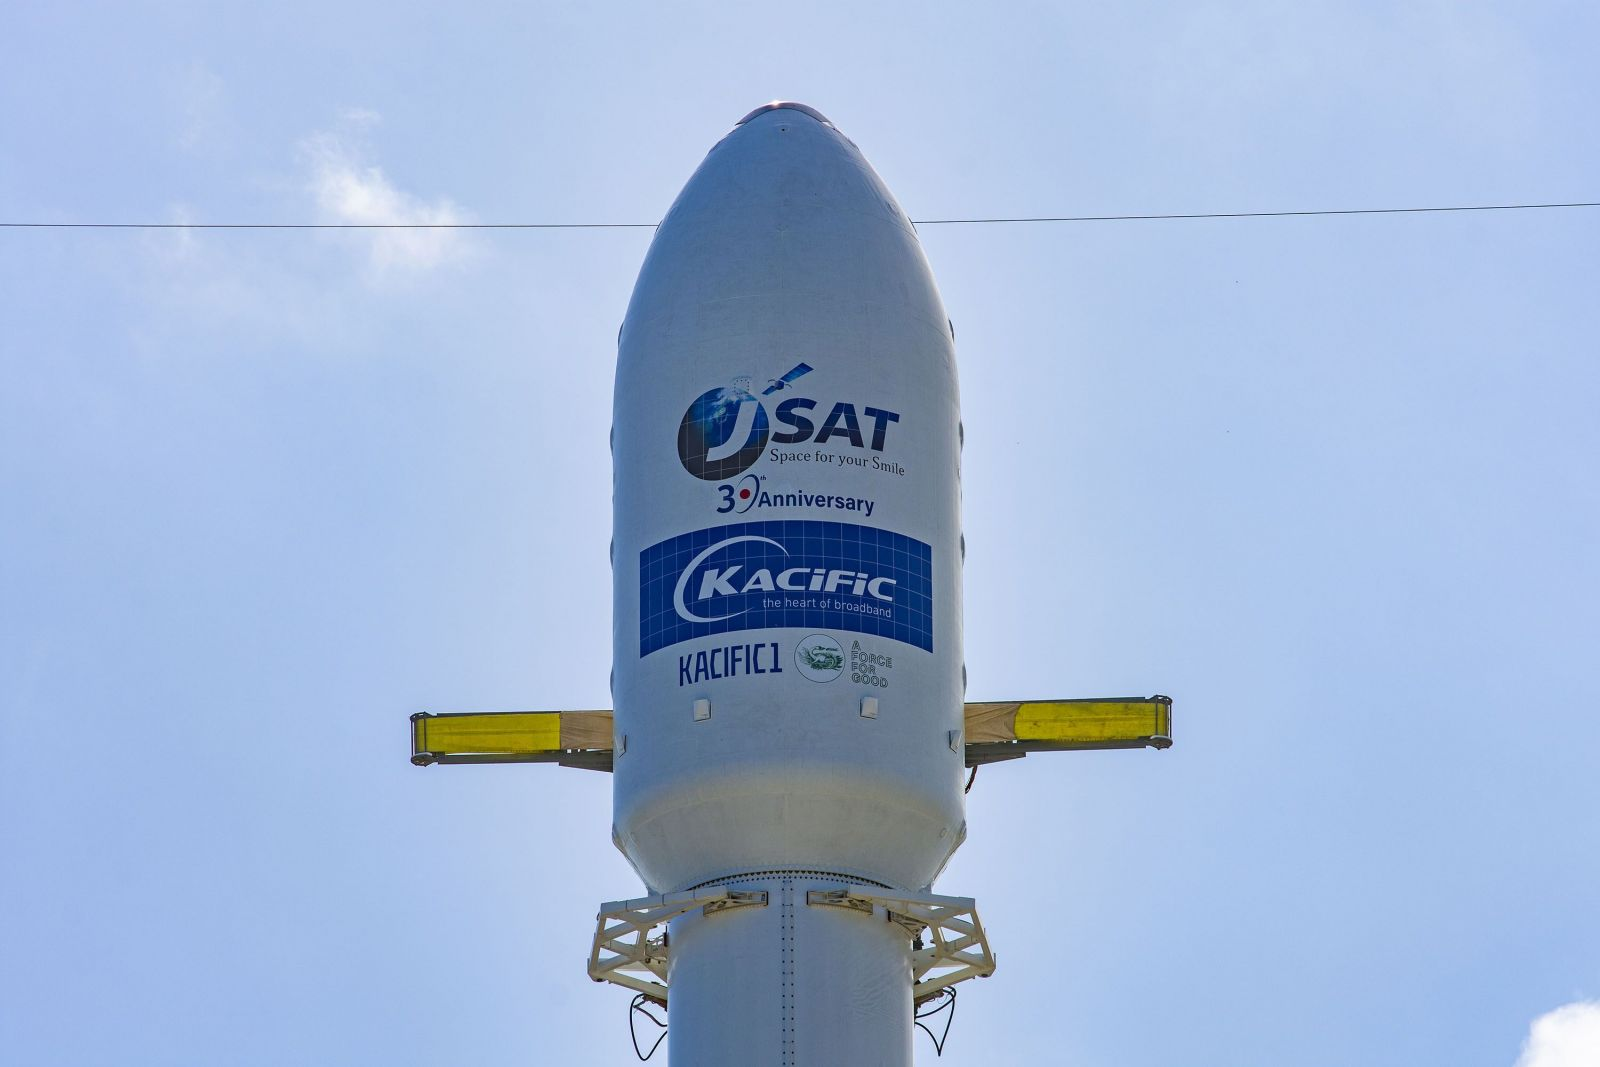 The Falcon 9's payload fairing containing the JCSAT-18 / Kacific-1 satellite. Photo Credit: SpaceX